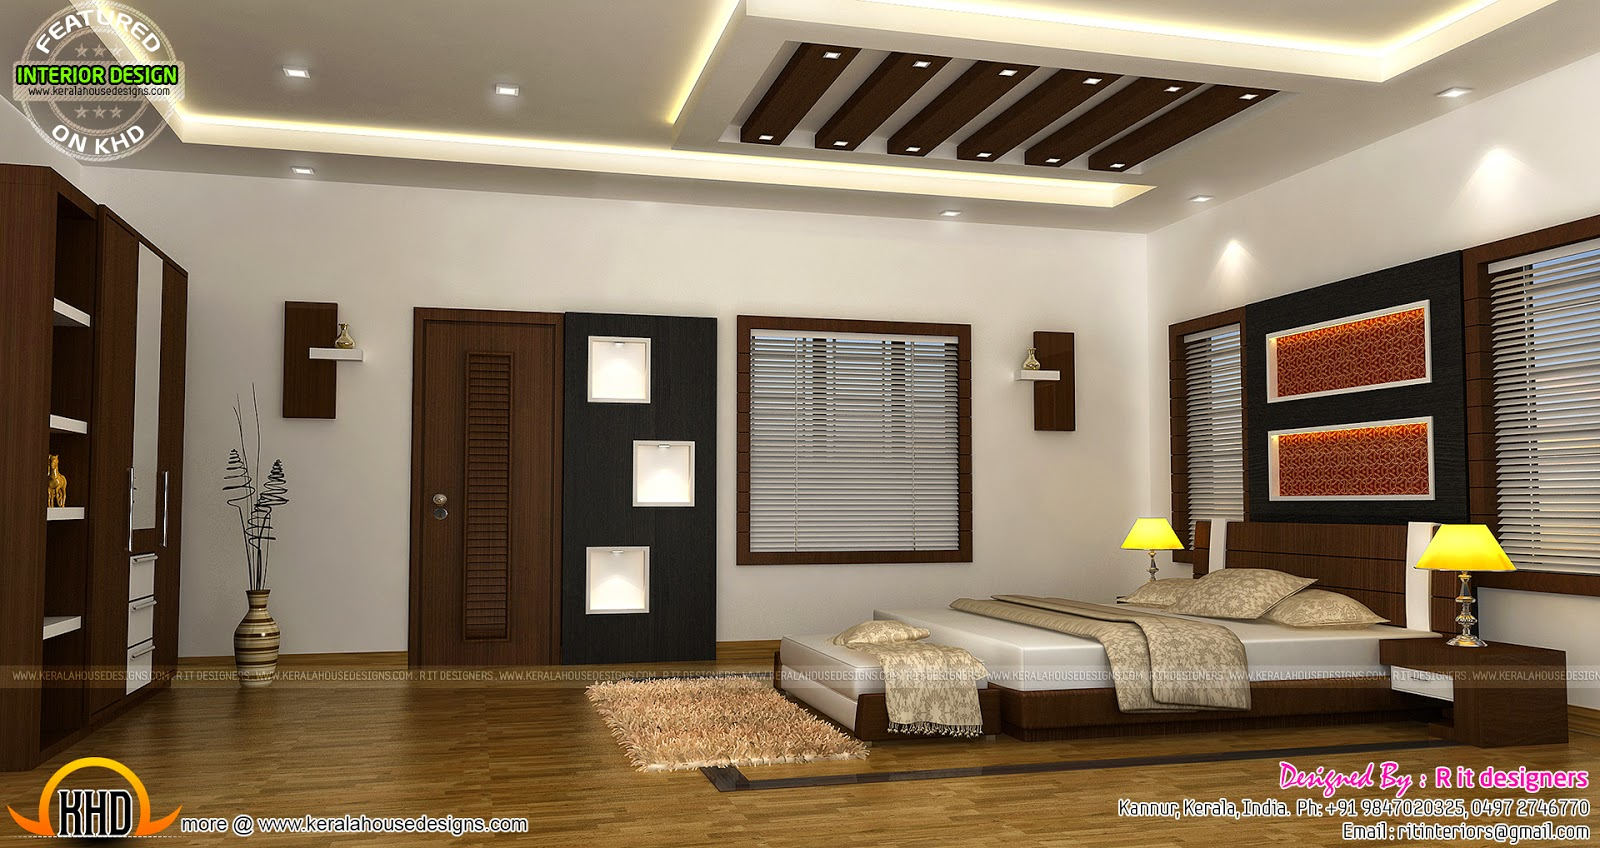 Bedroom Interior Design With Cost Kerala Home Design And